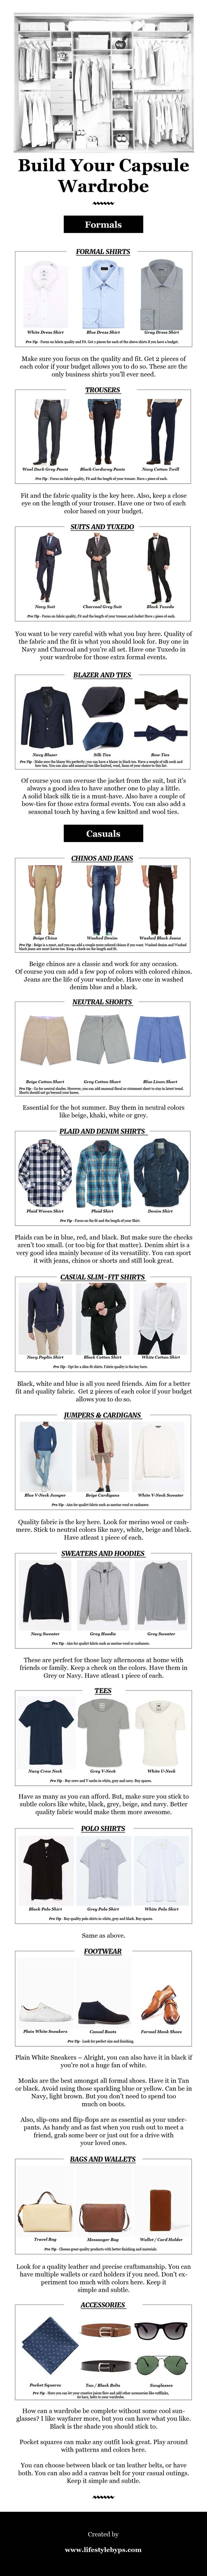 Build Your Capsule Wardrobe from the ground up. Infographic